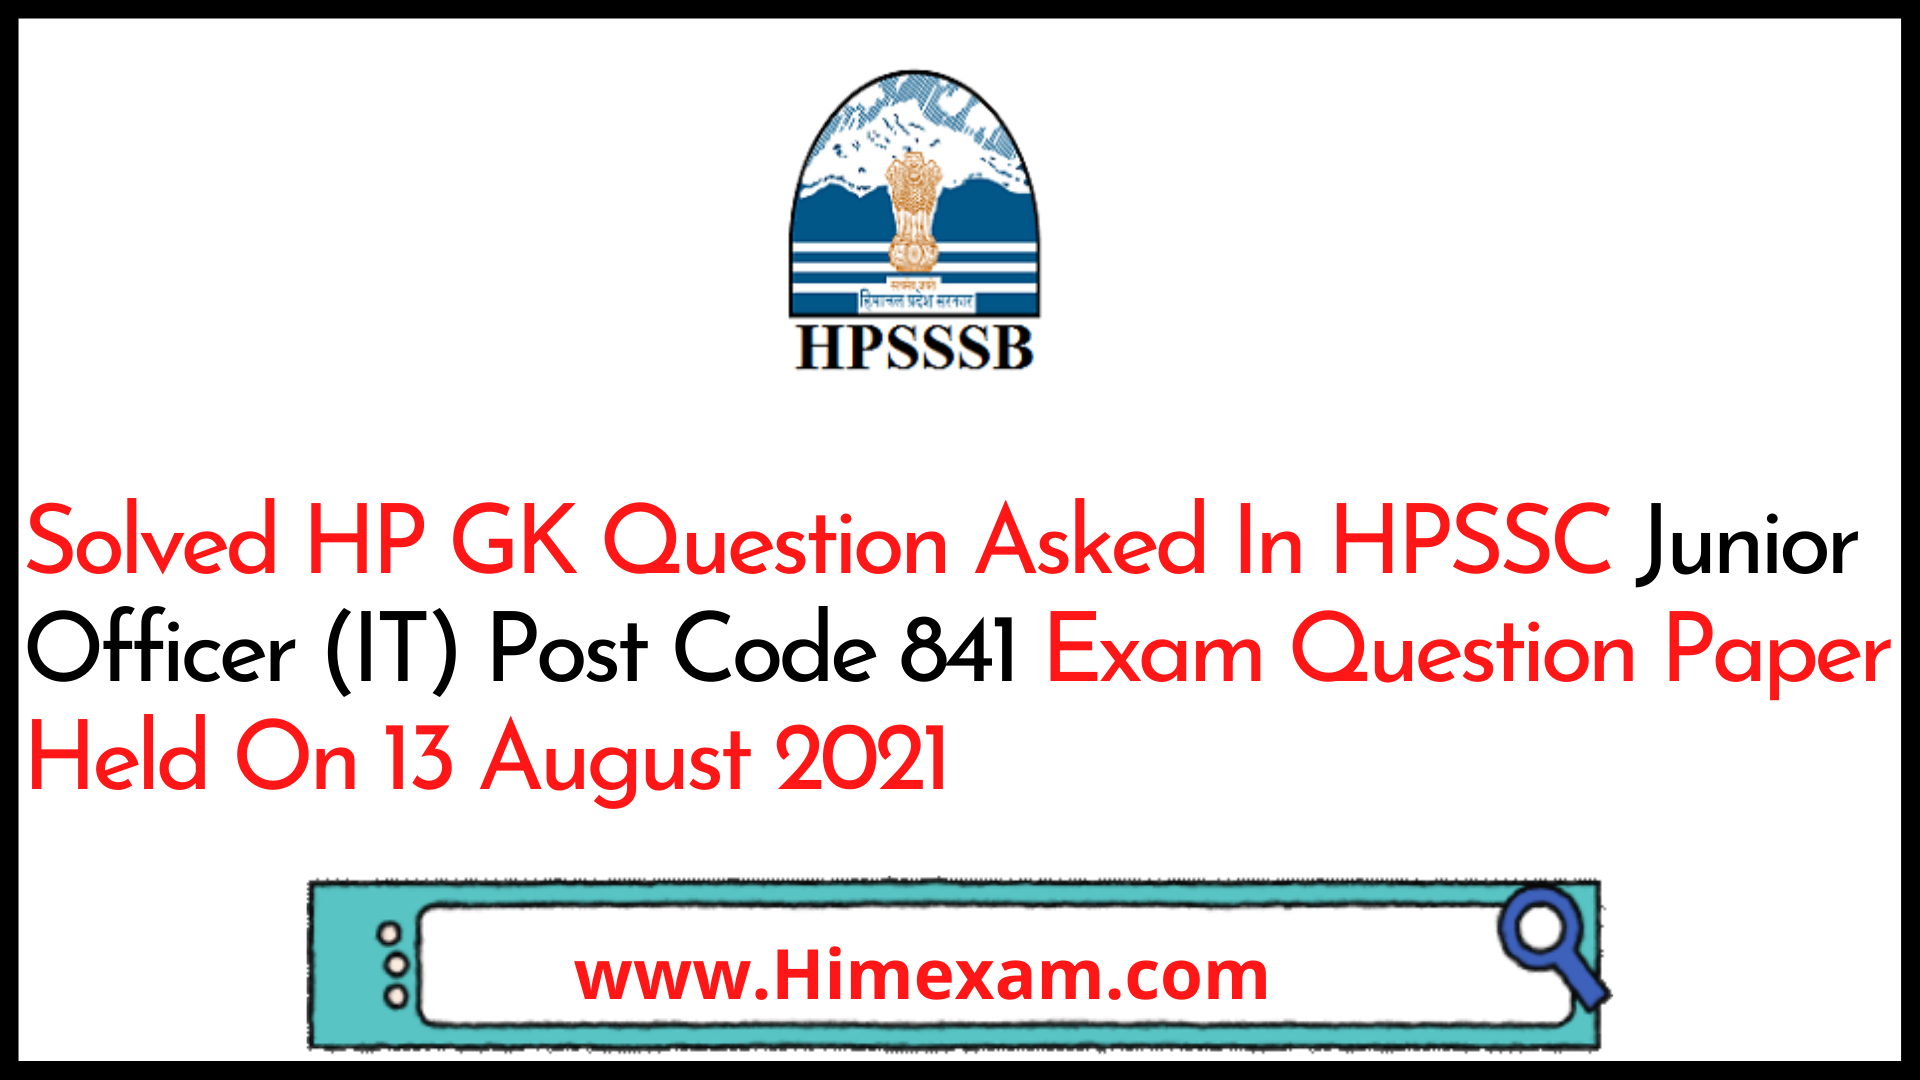 Solved HP GK Question Asked In HPSSC Junior Officer (IT) Post Code 841  Exam Question Paper Held On 13 August 2021